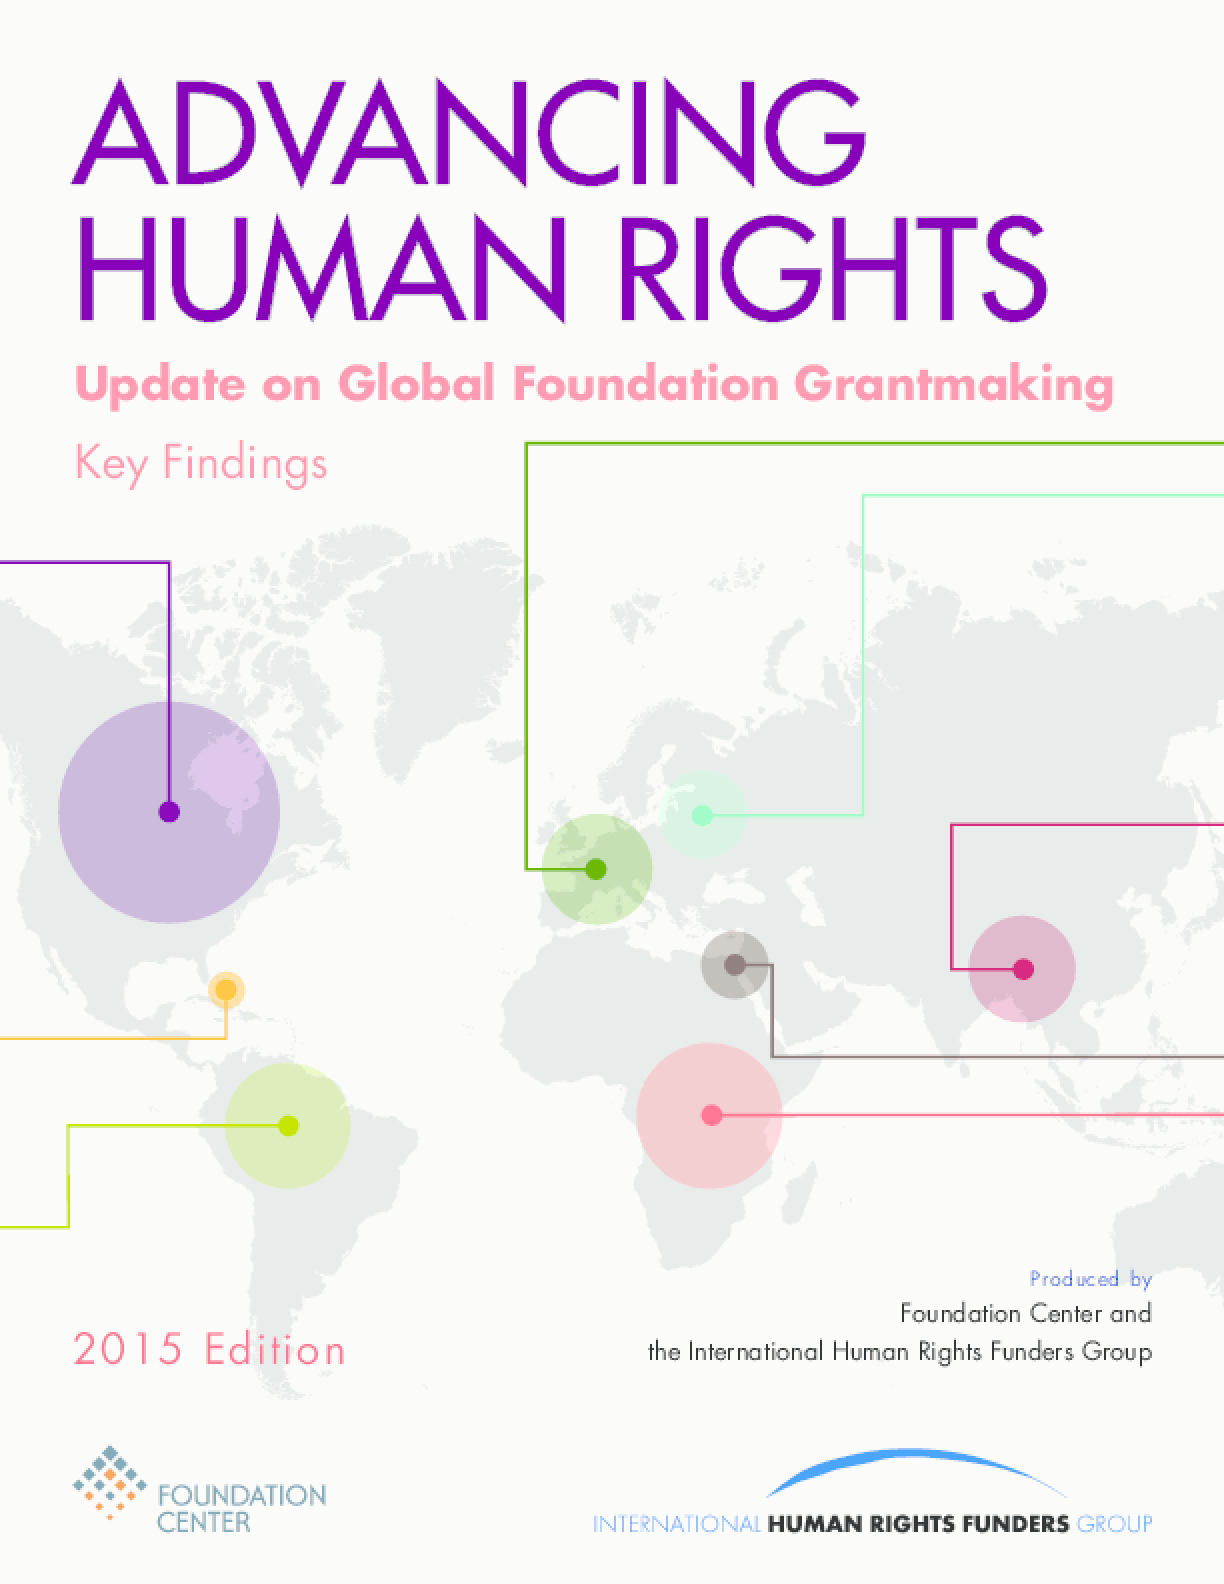 Advancing Human Rights: Update on Global Foundation Grantmaking 2015 Edition